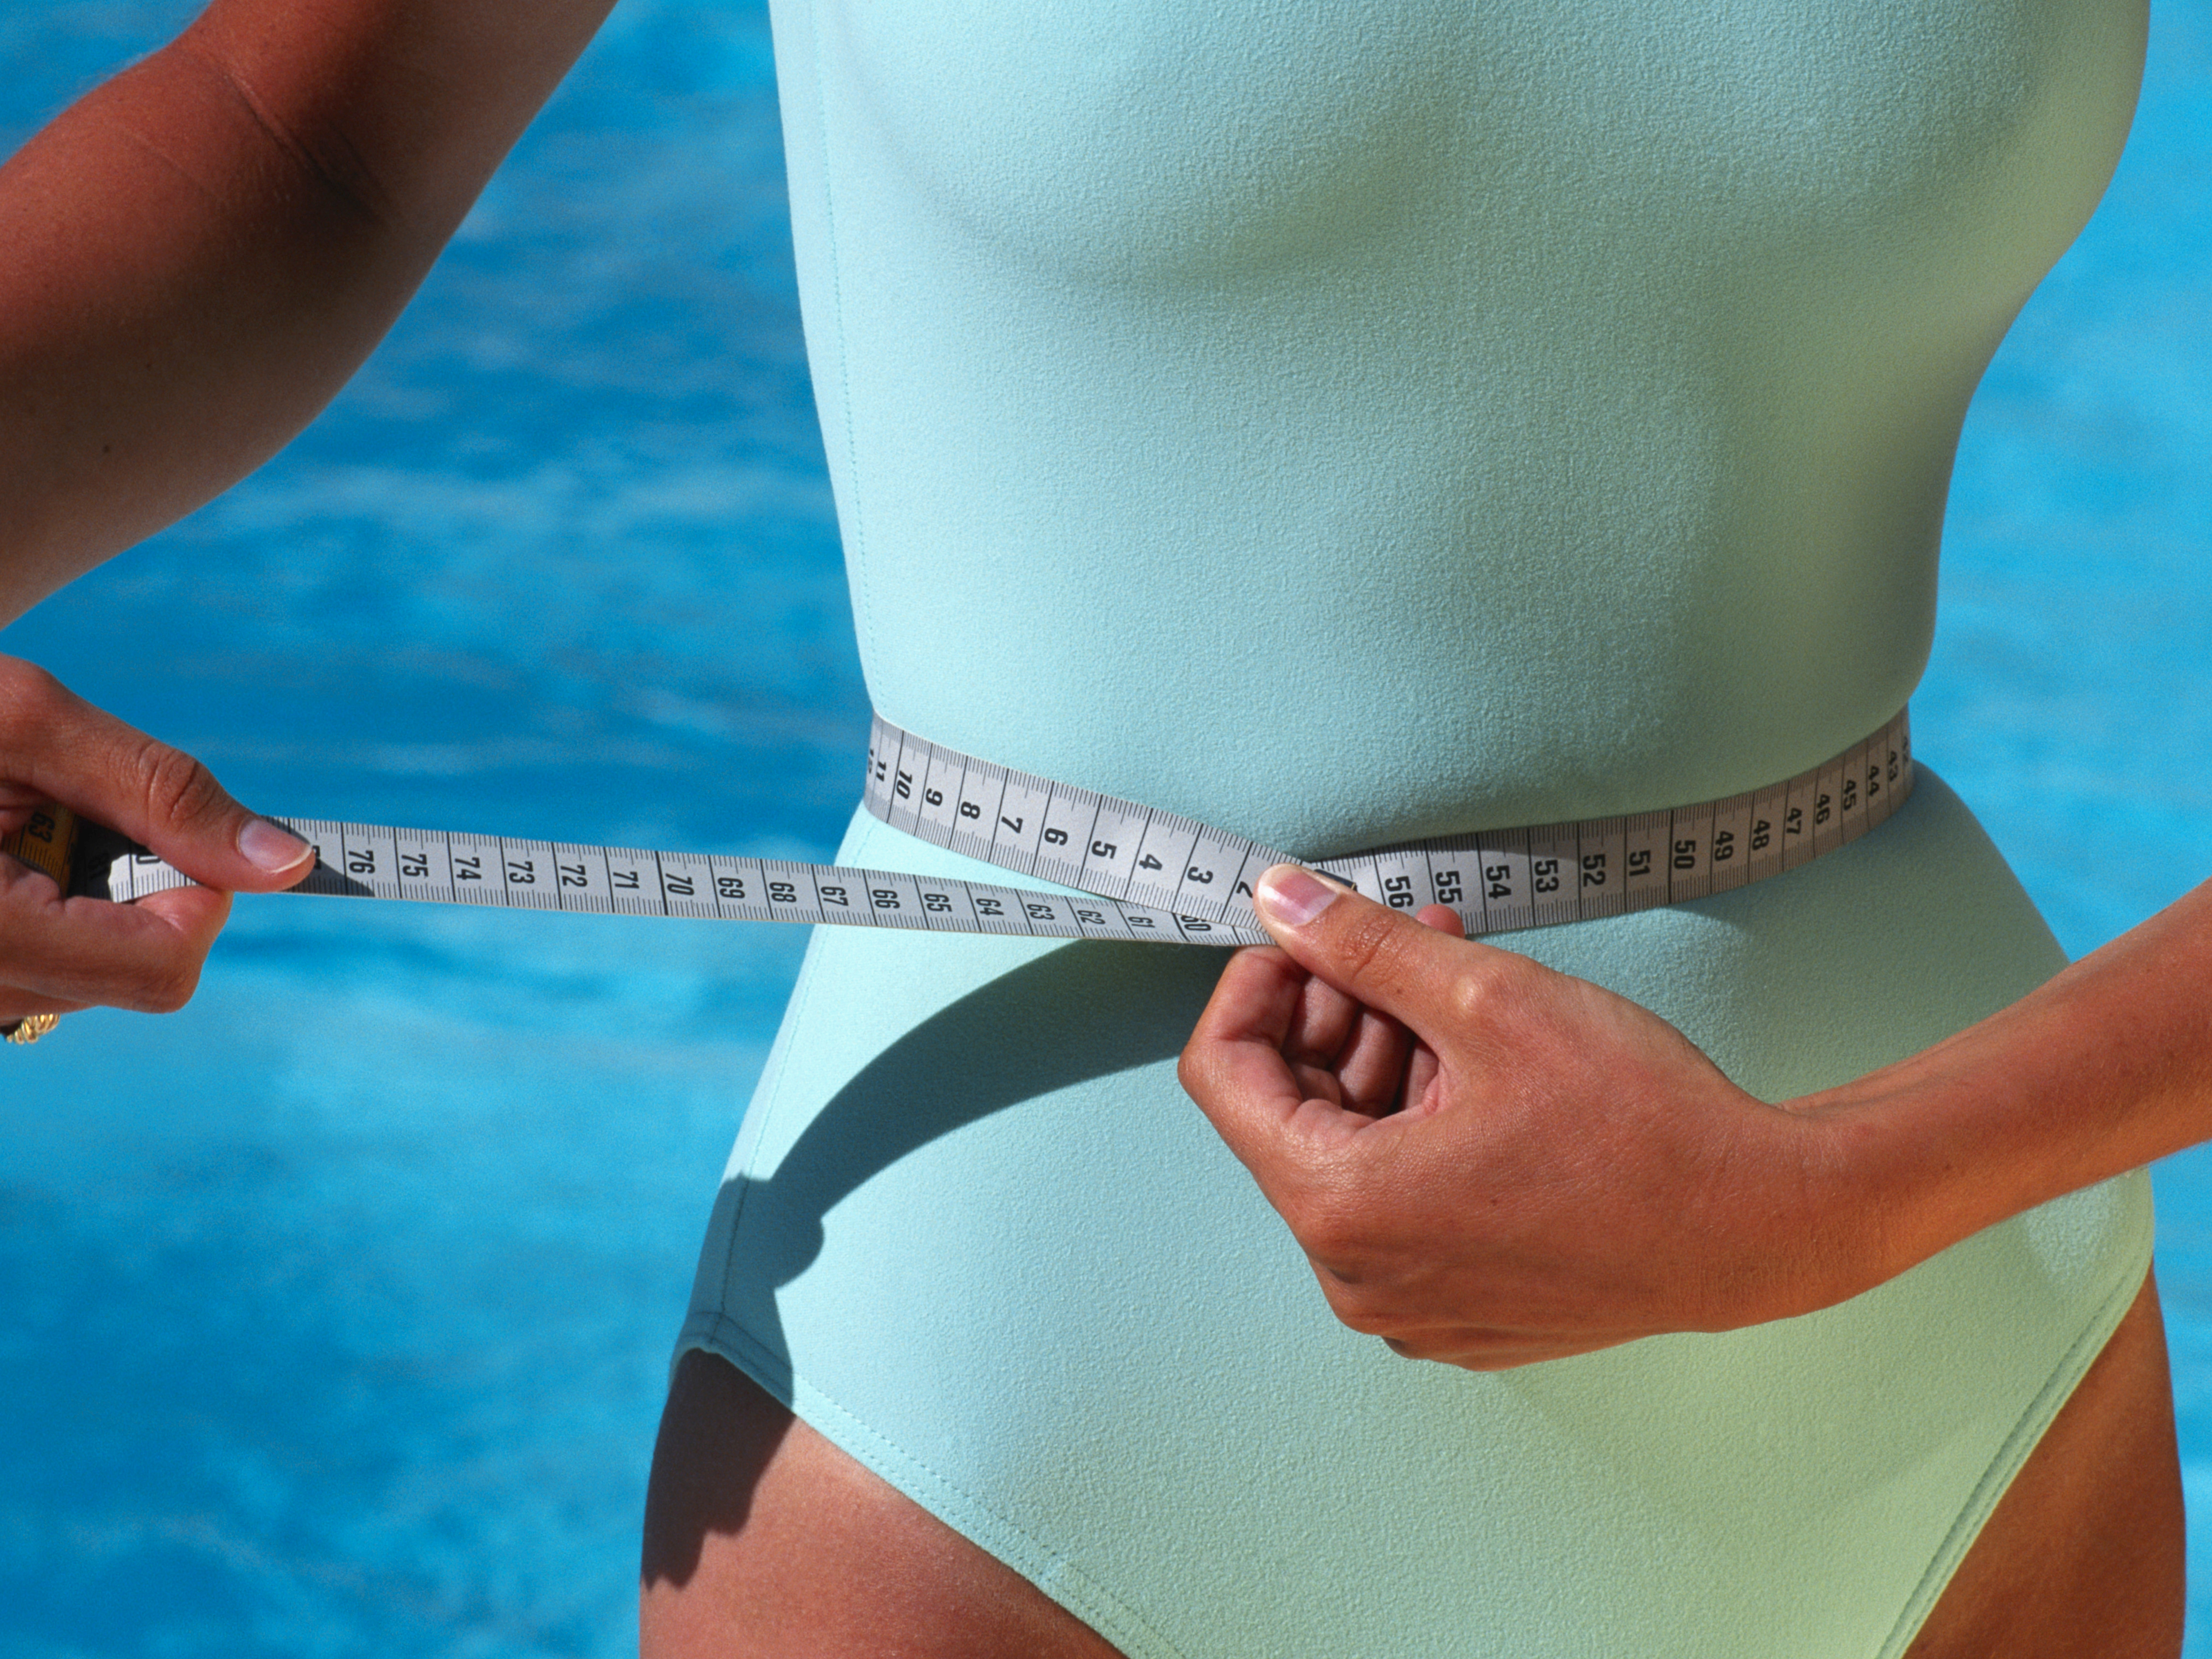 Researchers to dieters: Eat more of this to lose weight